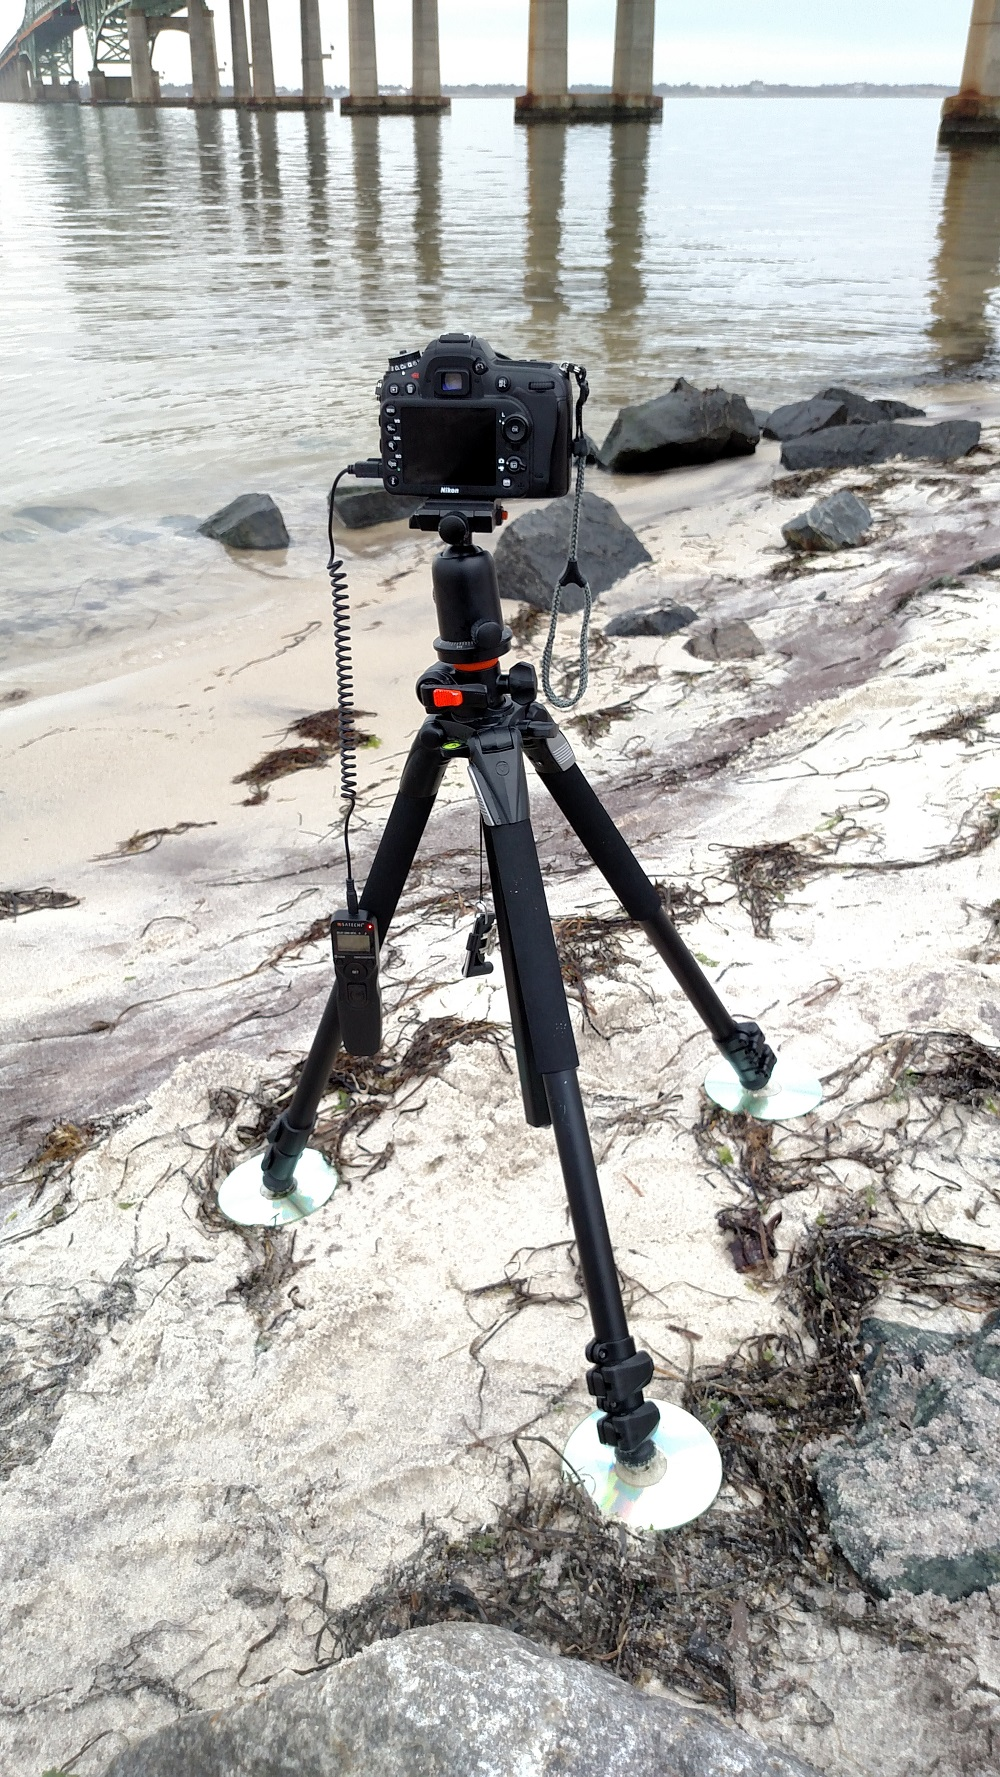 Here's my setup, I'm using my  Vanguard Alta Pro tripod  placed on CDs (I recently started keeping these in my bag to prevent sinking into the sand) and I have my cable release plugged in.